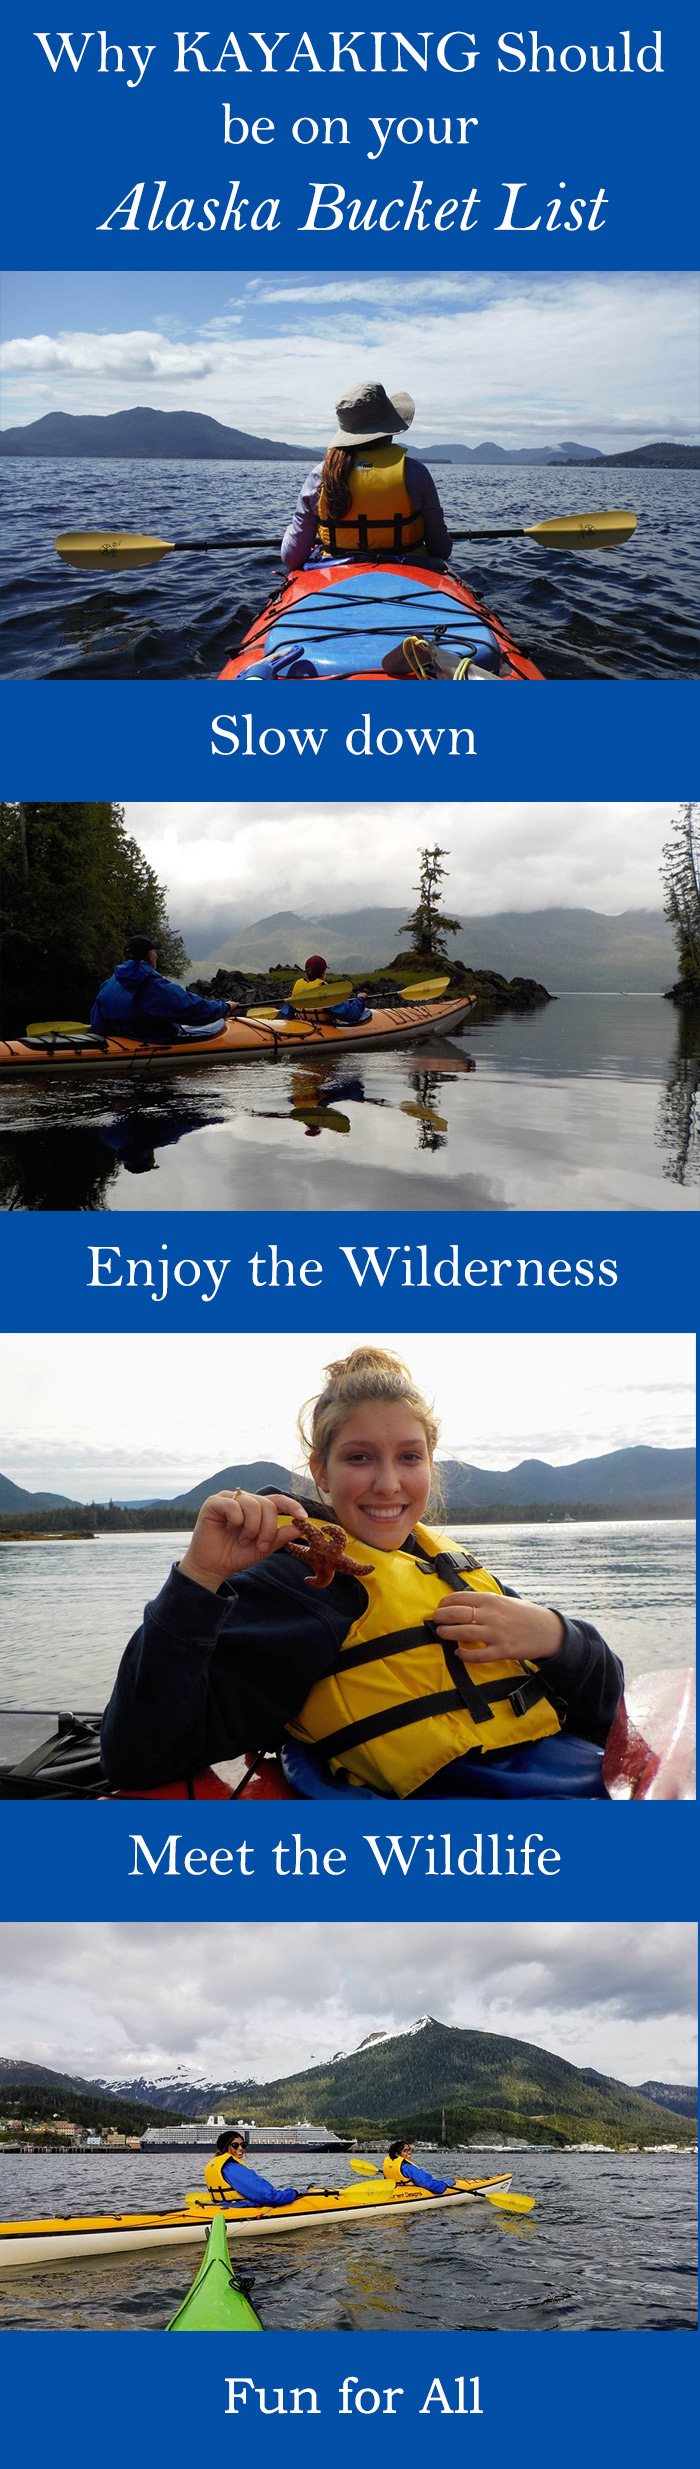 Come kayak with us in Ketchikan! It's a fabulous way to experience Alaska.